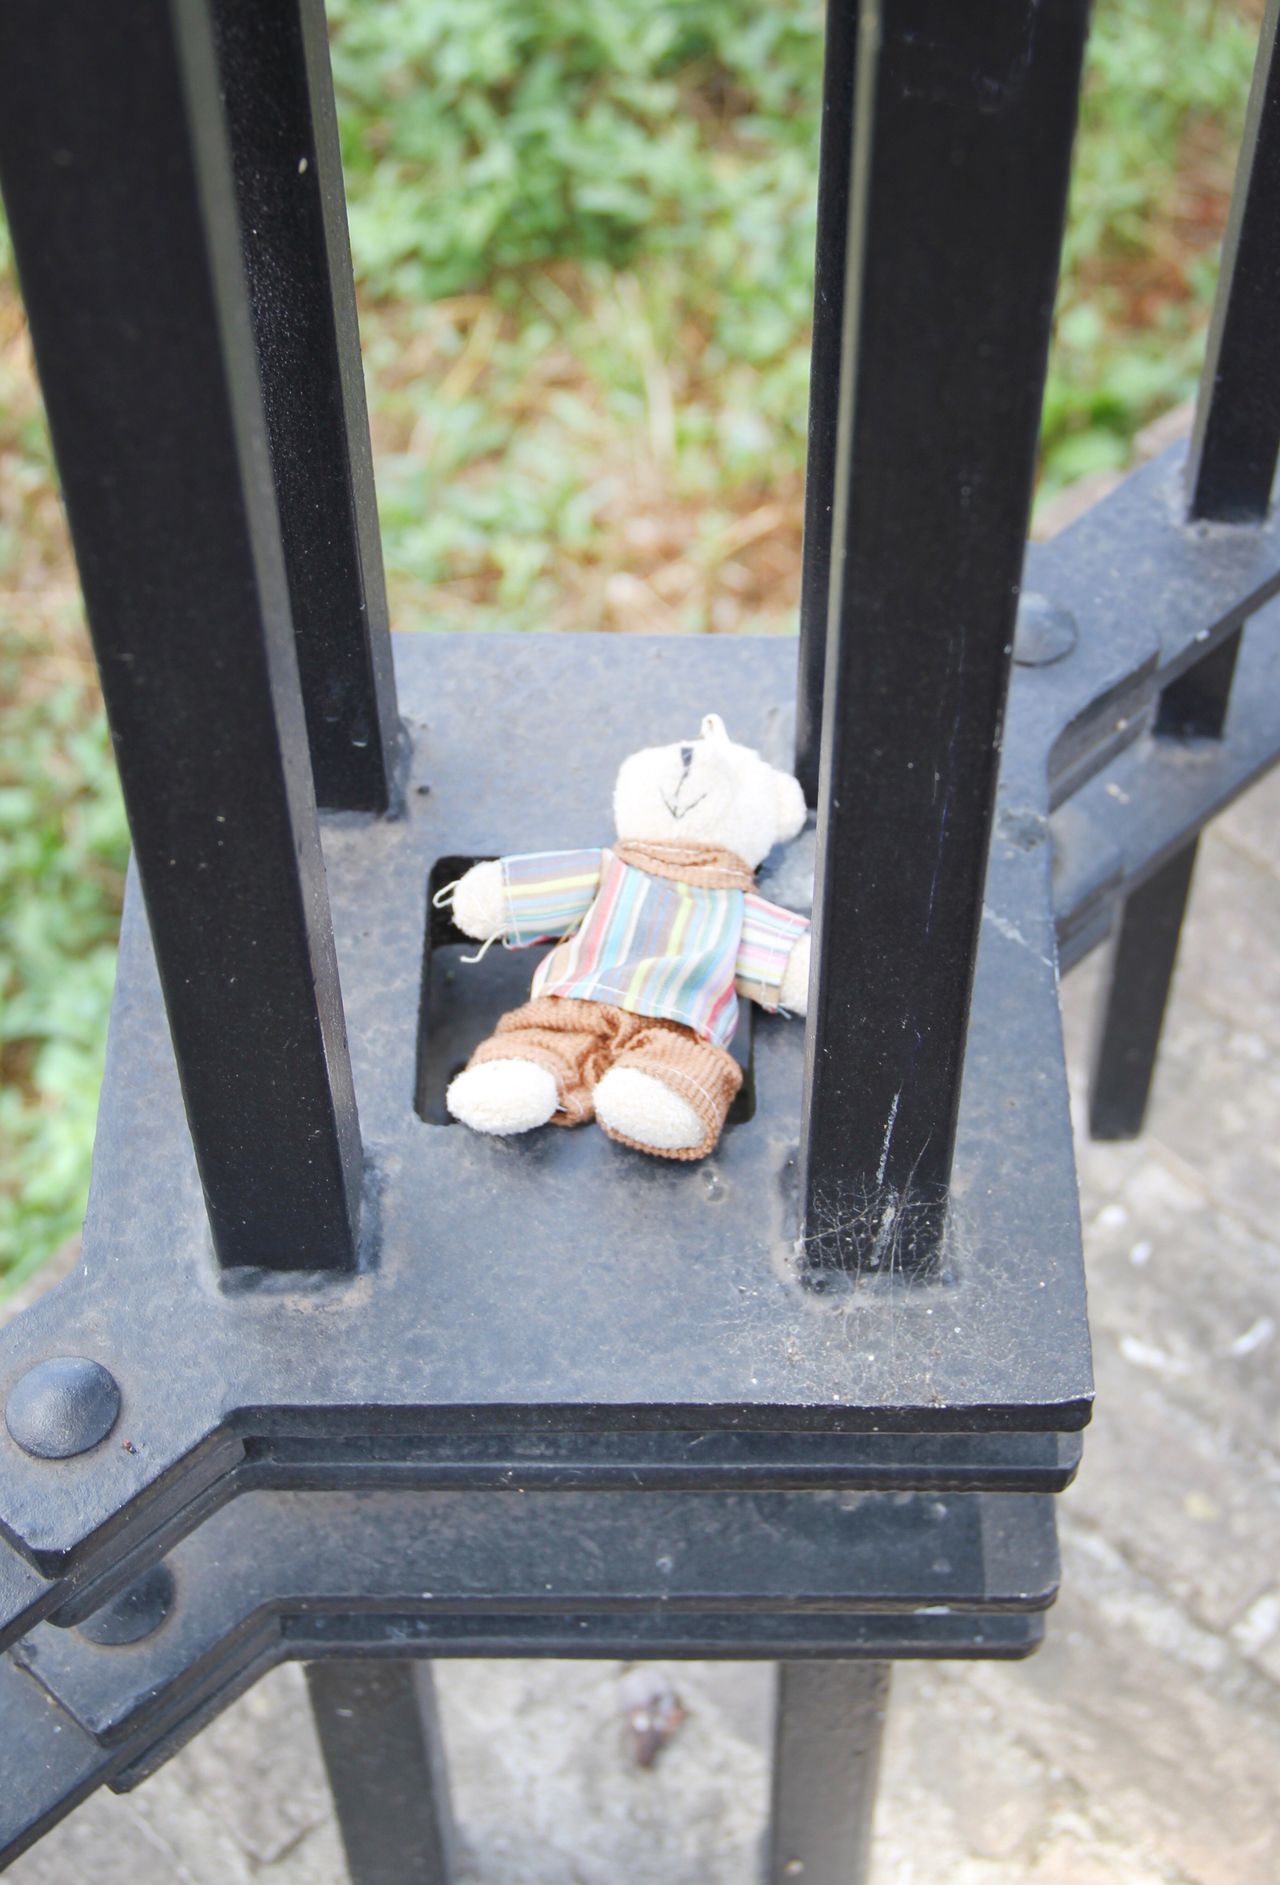 The lost toy Day High Angle View No People Outdoors Close-up Food Nature Lost Ladyphotographerofthemonth Toy Toys Sad Teddy Bear Stuffed Toy Bear Loosing Lost And Found City Life Fence Iron Sad Child